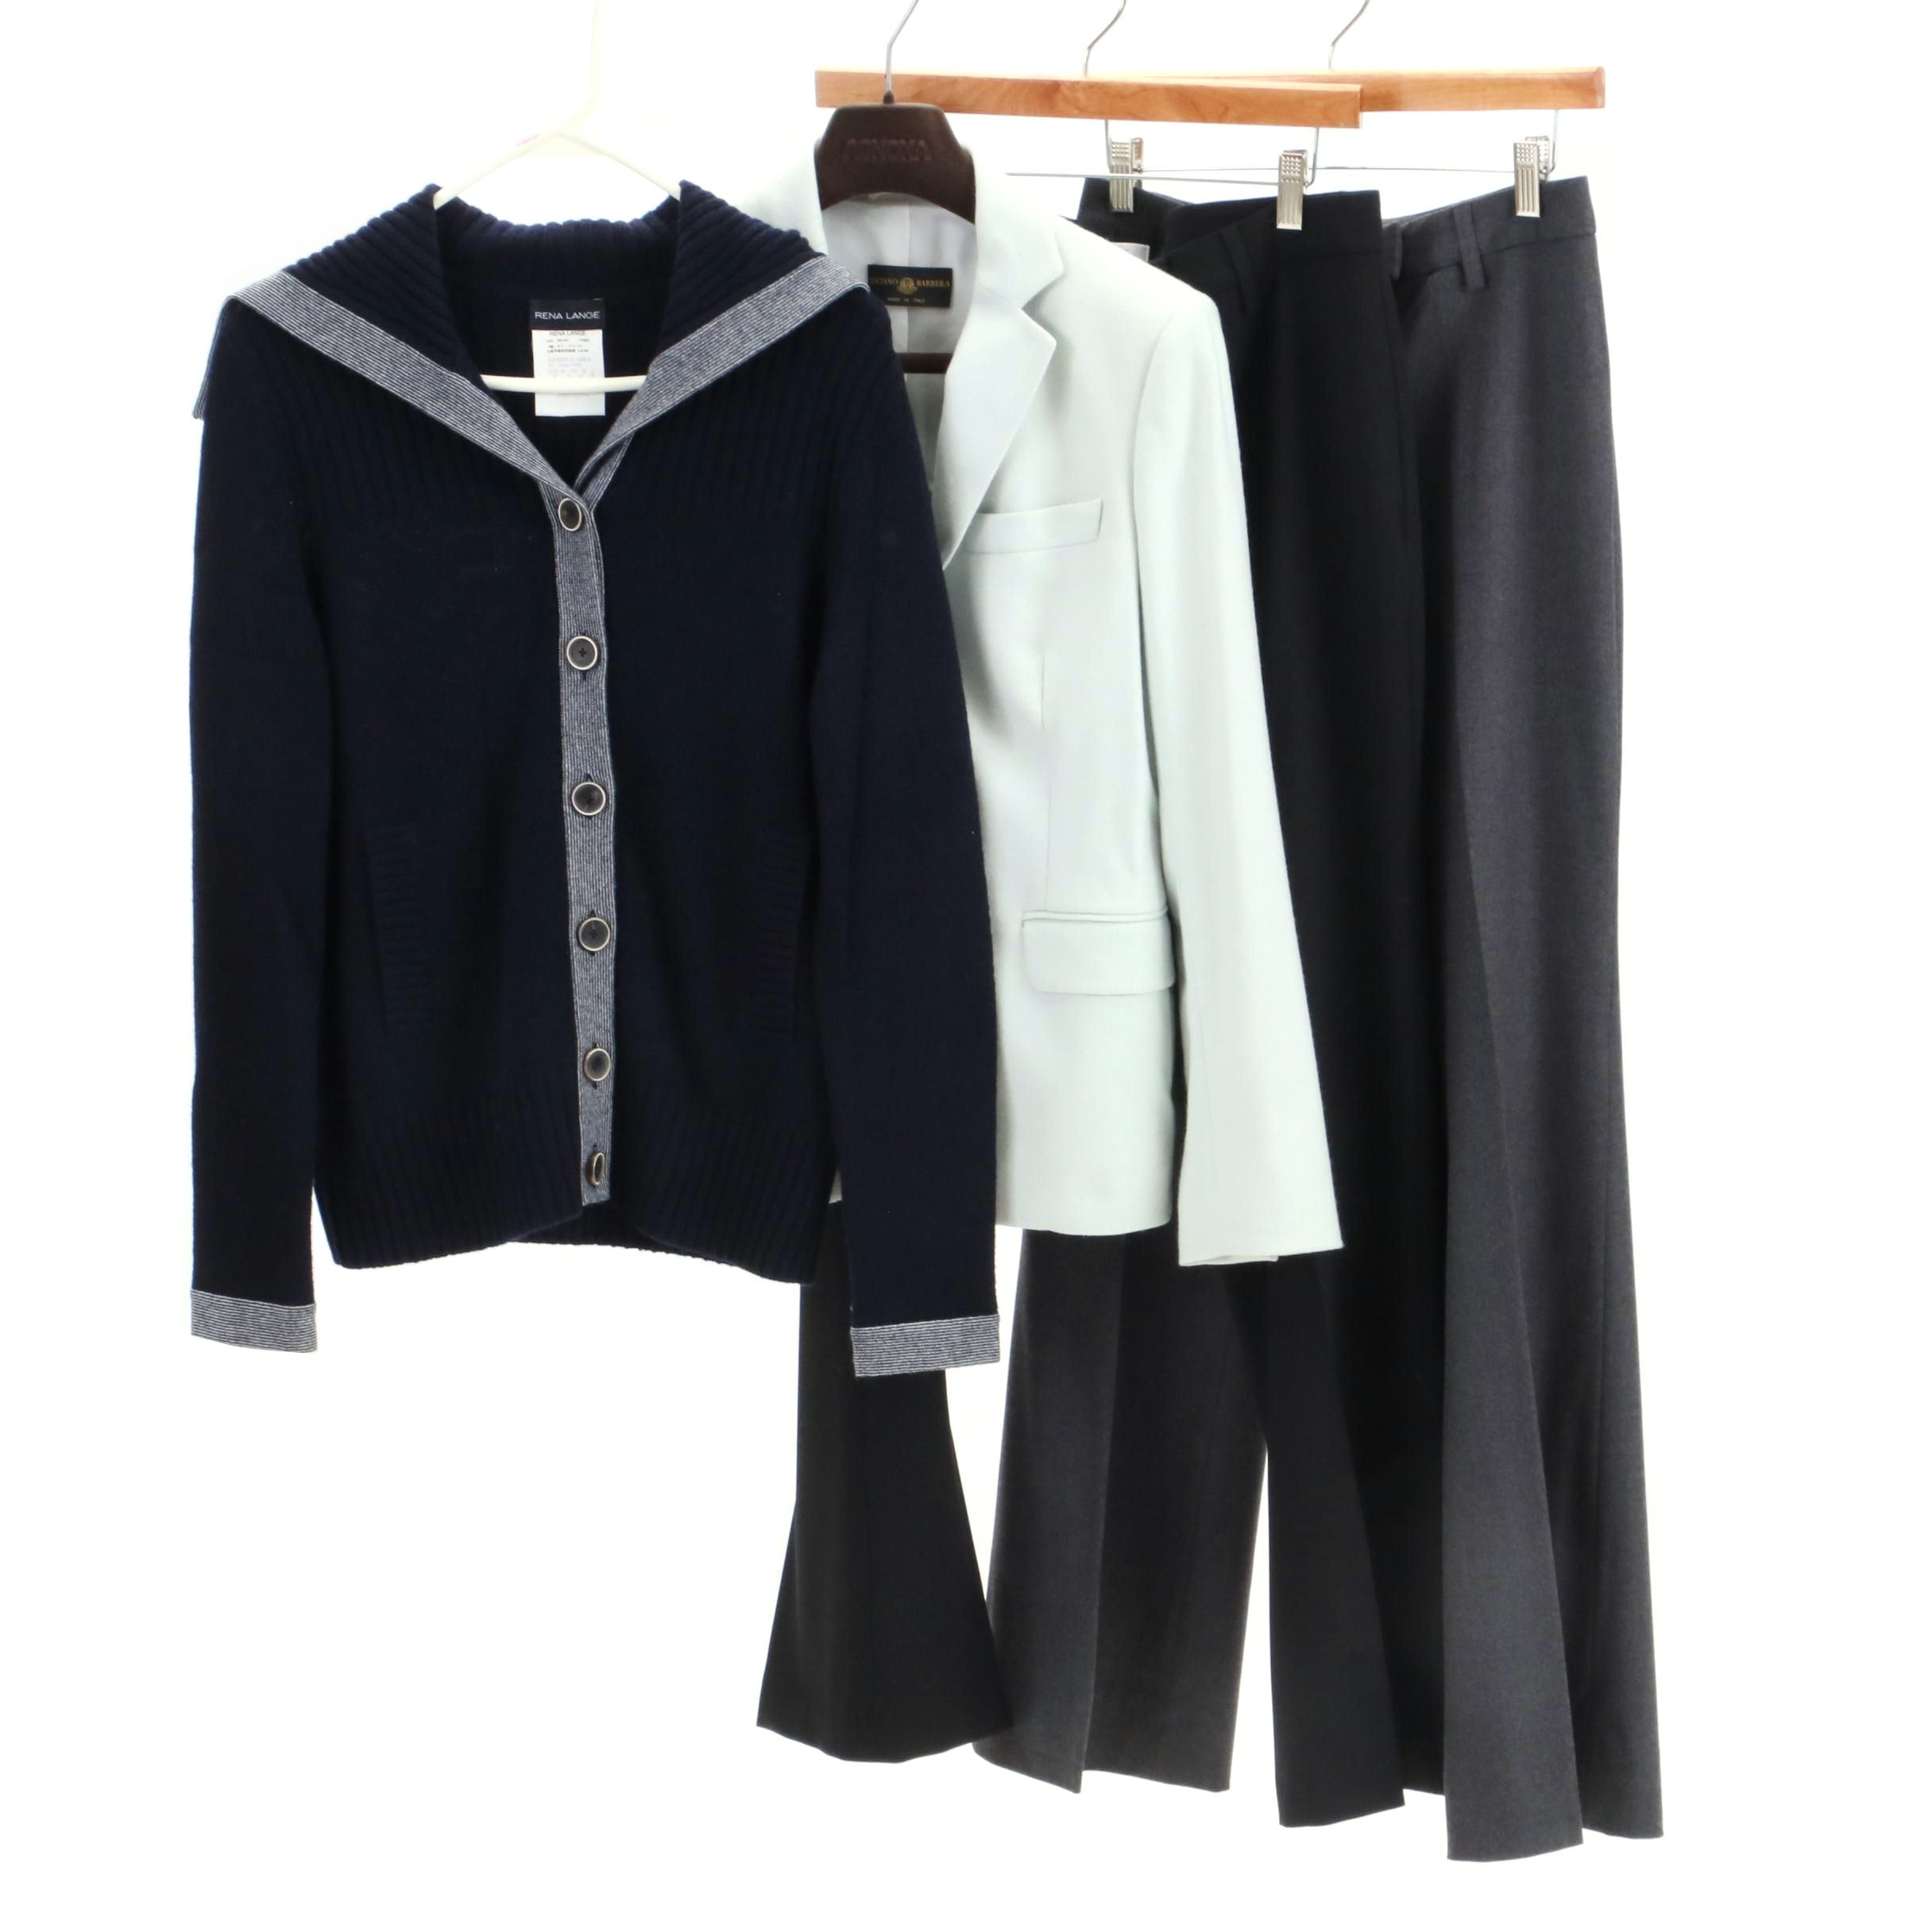 Luciano Barbera Cashmere Jacket and Other Clothing Separates